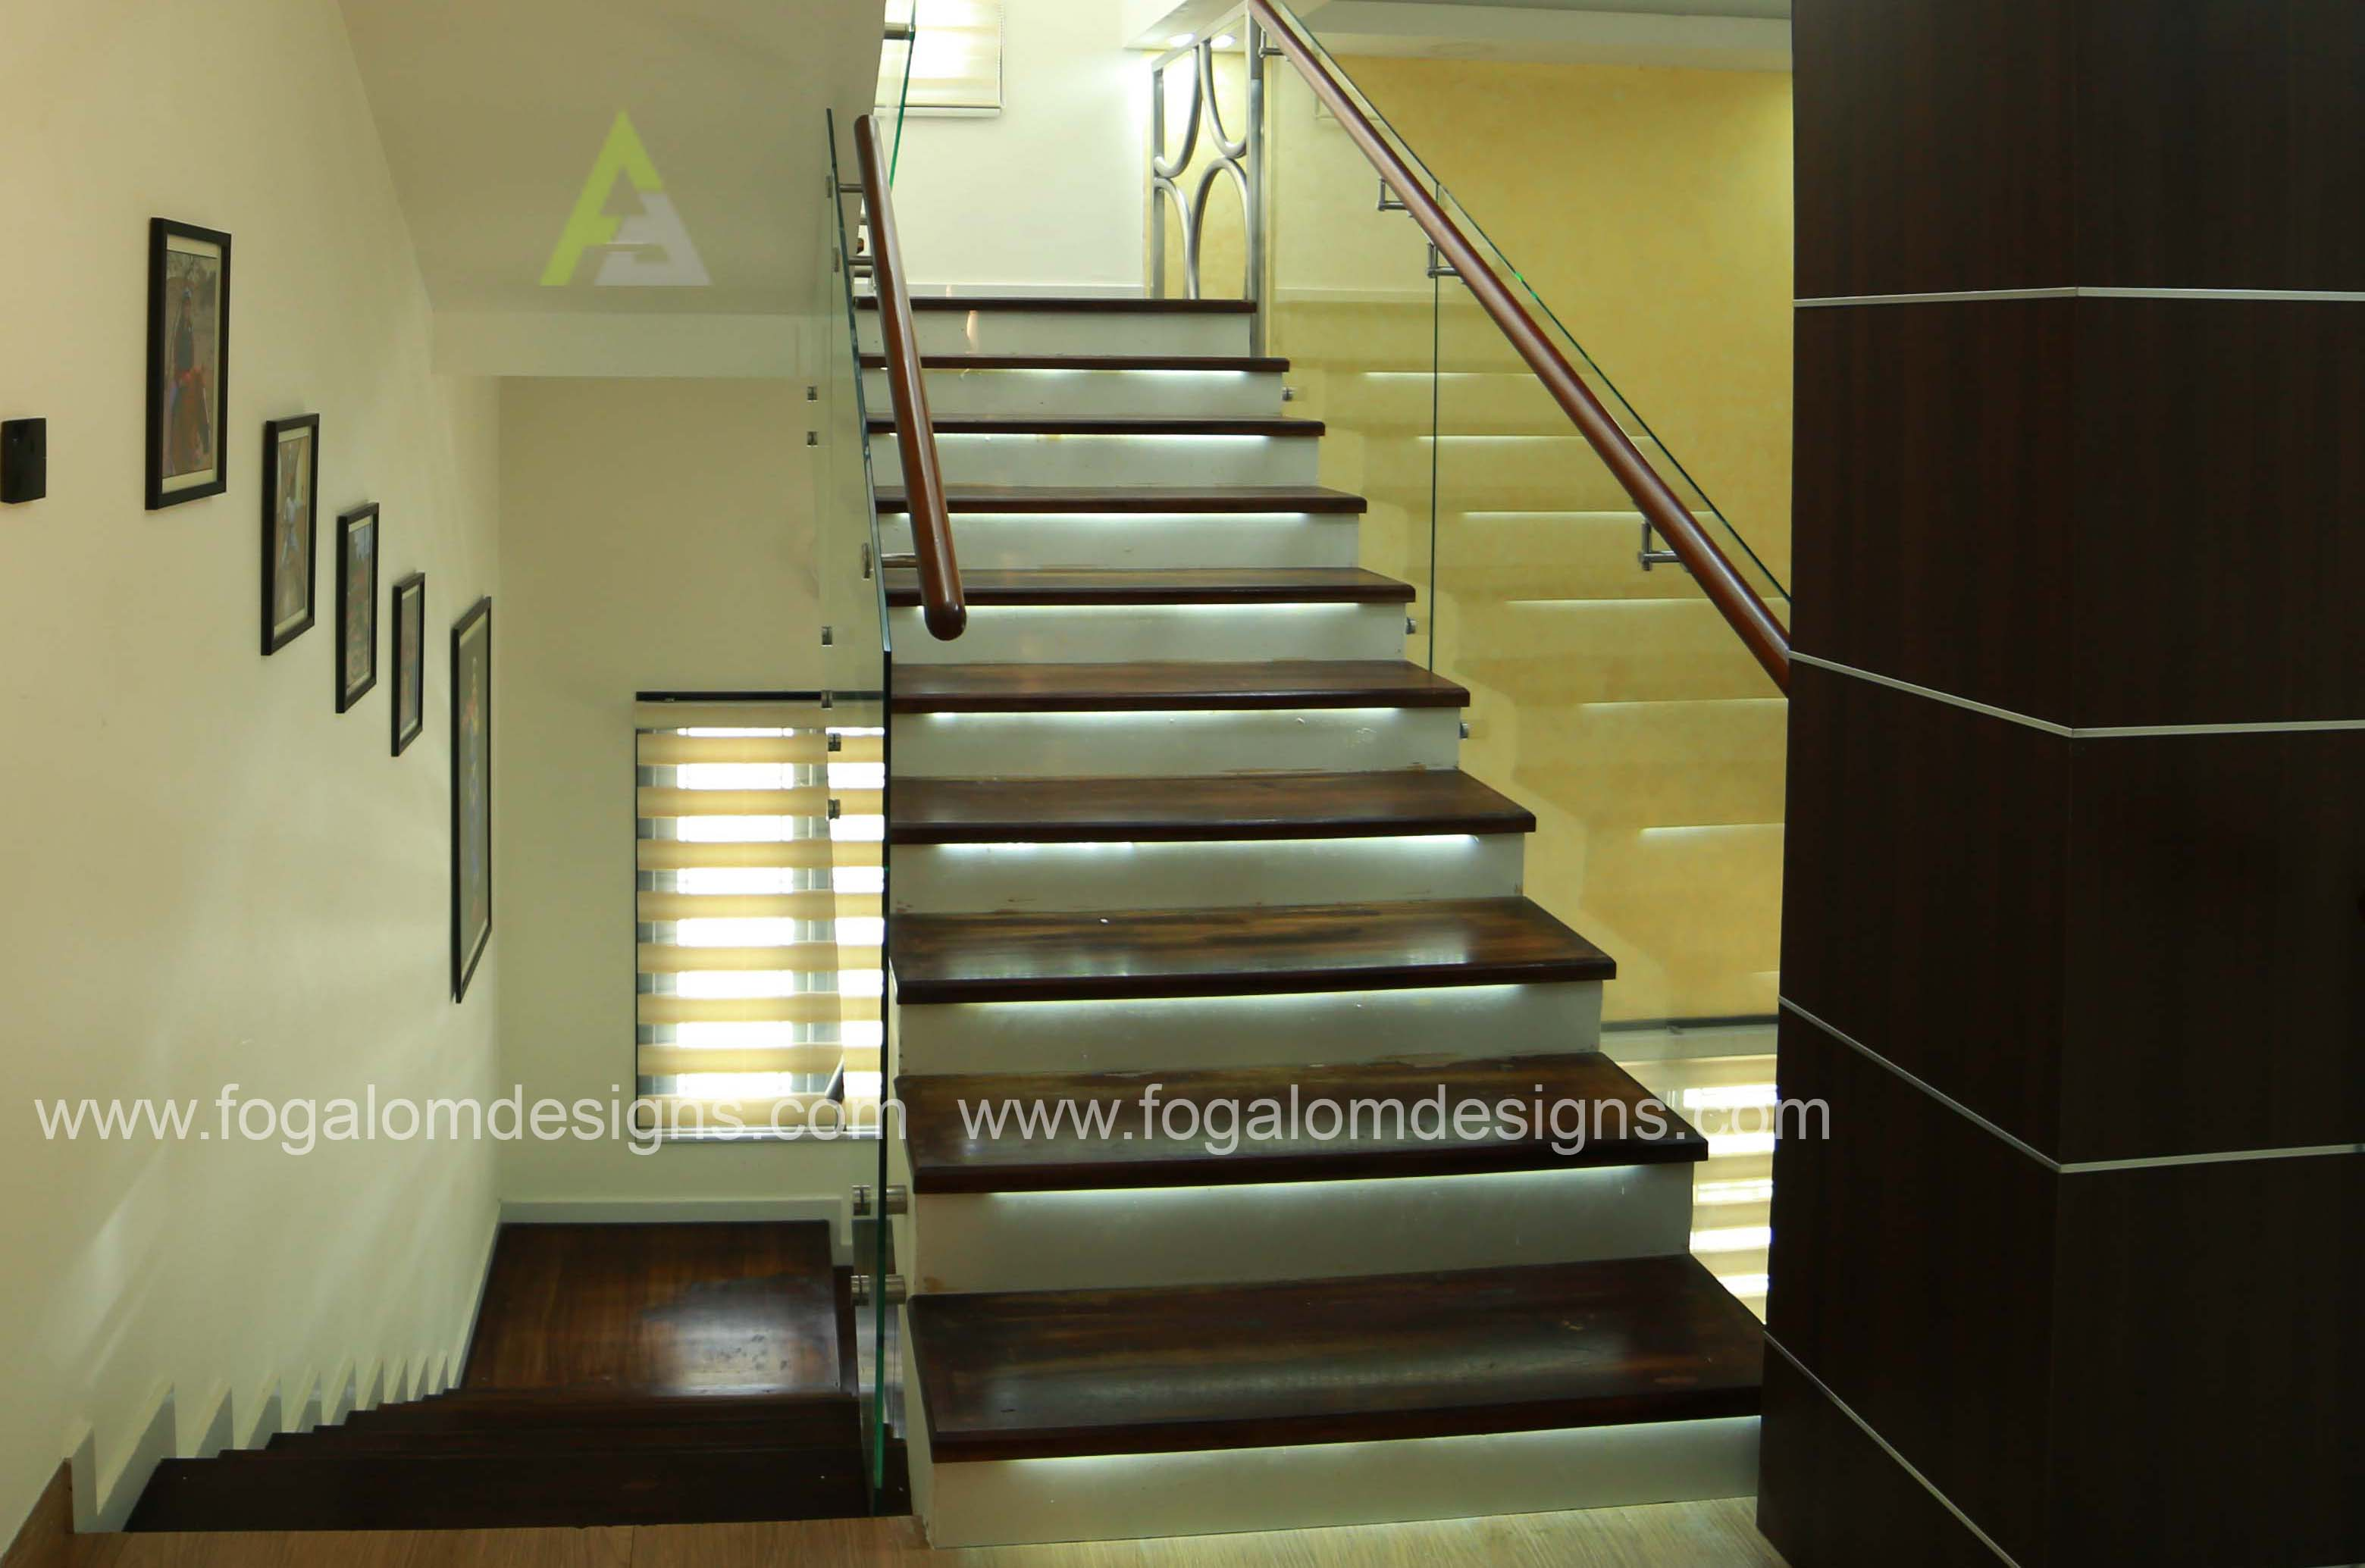 STAIRCASE   Home Interiors  Kochi -  Ernakulam  Dinning - Kitchen - Living rooms & Bed rooms  Designers : Fogalom Designs  for more details : 9895757687 , 9605422333  visit our site here : www.fogalomdesigns.com